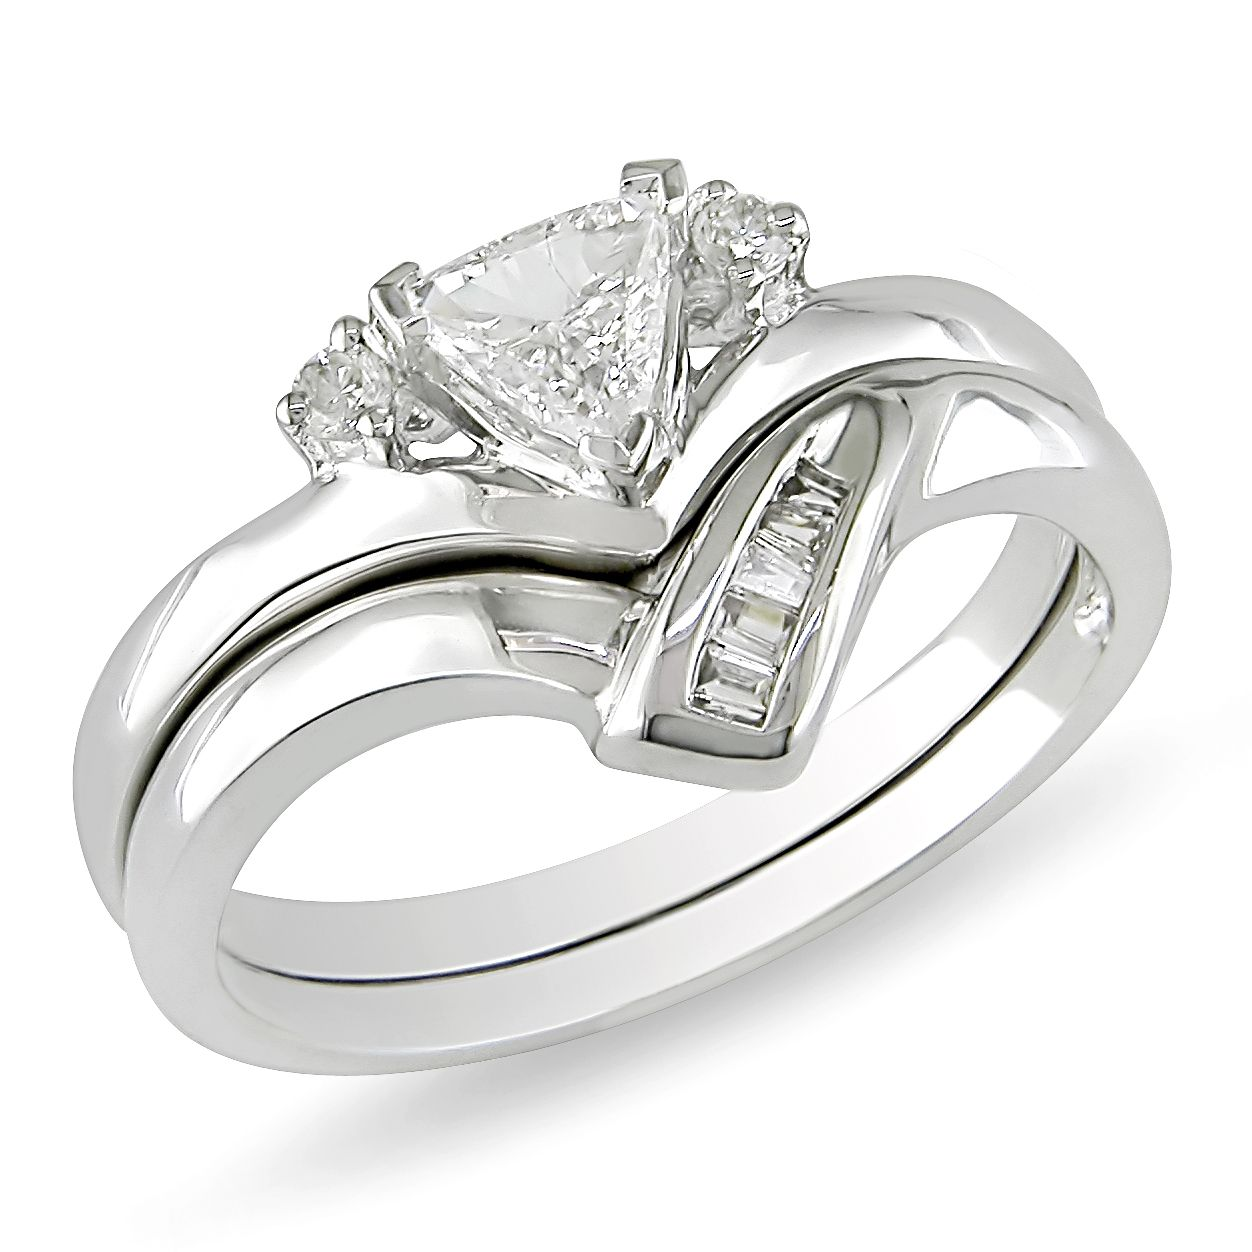 Cheap Wedding Rings Walmart at Exclusive Wedding Decoration and